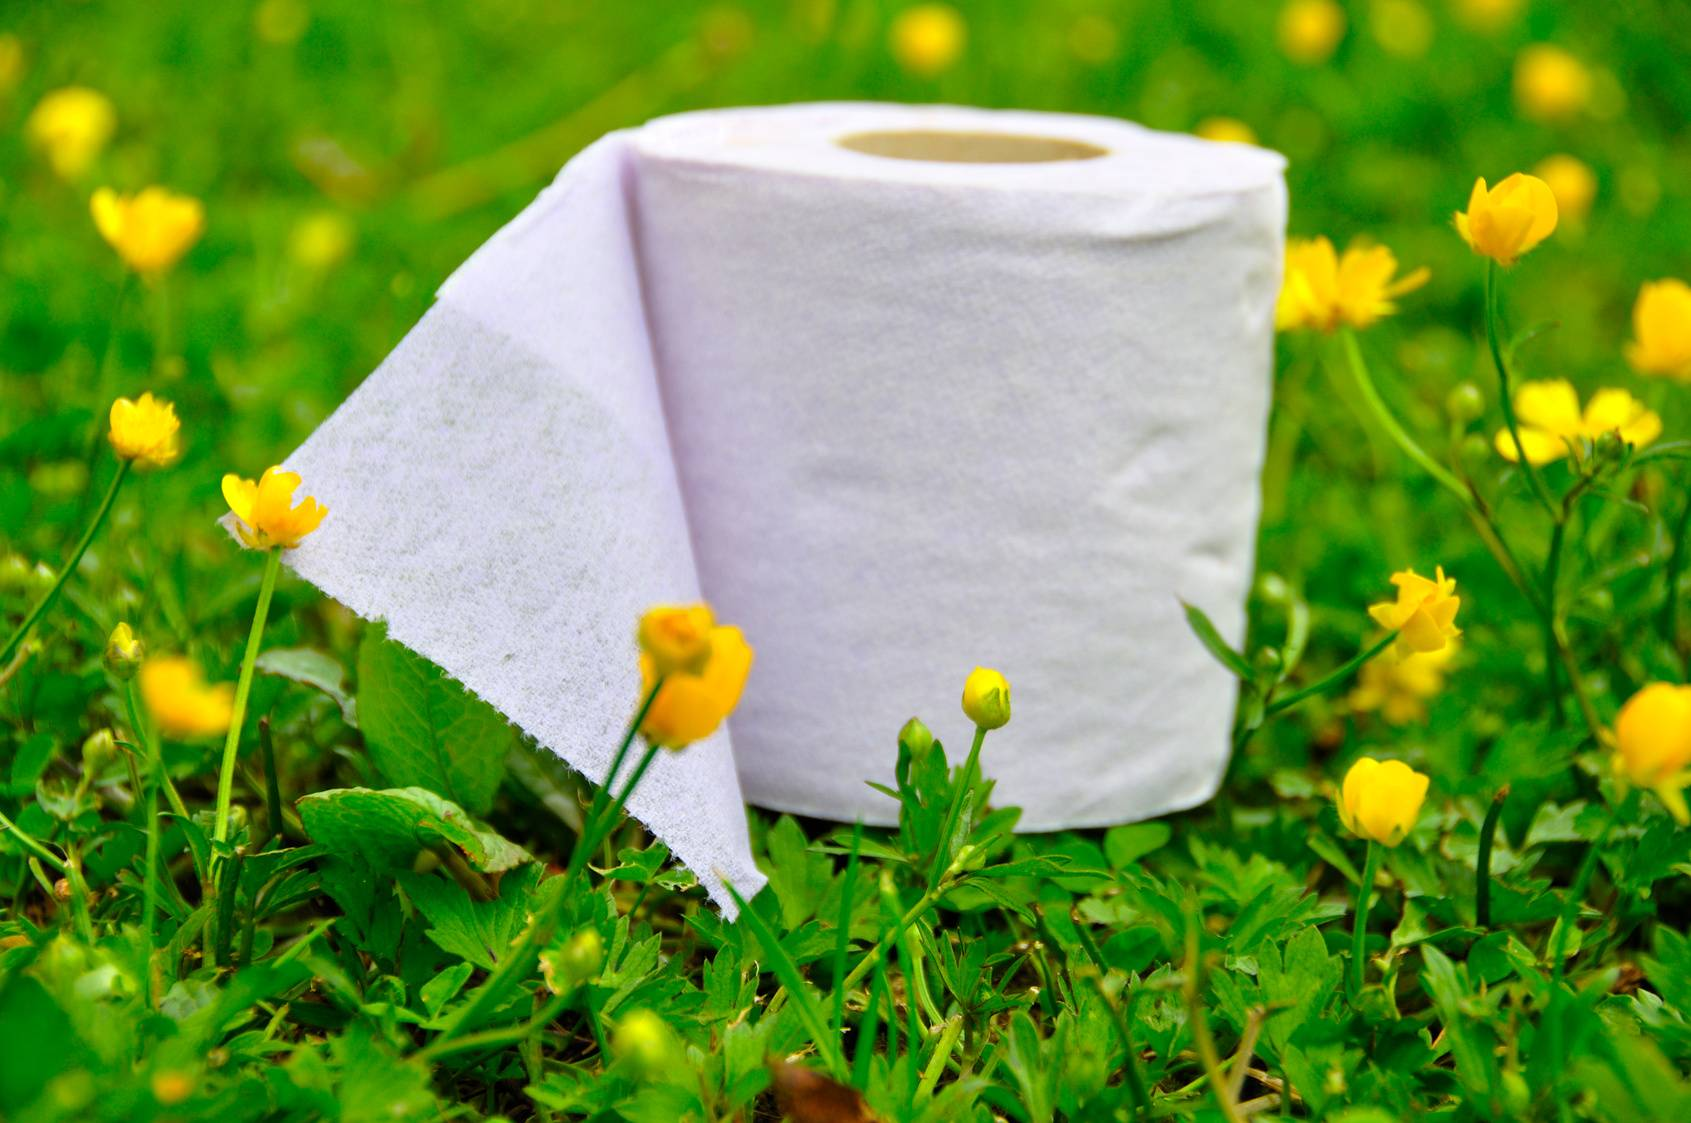 Biologic Active Tissue Paper BBA Biotech Toilet Paper Biologically